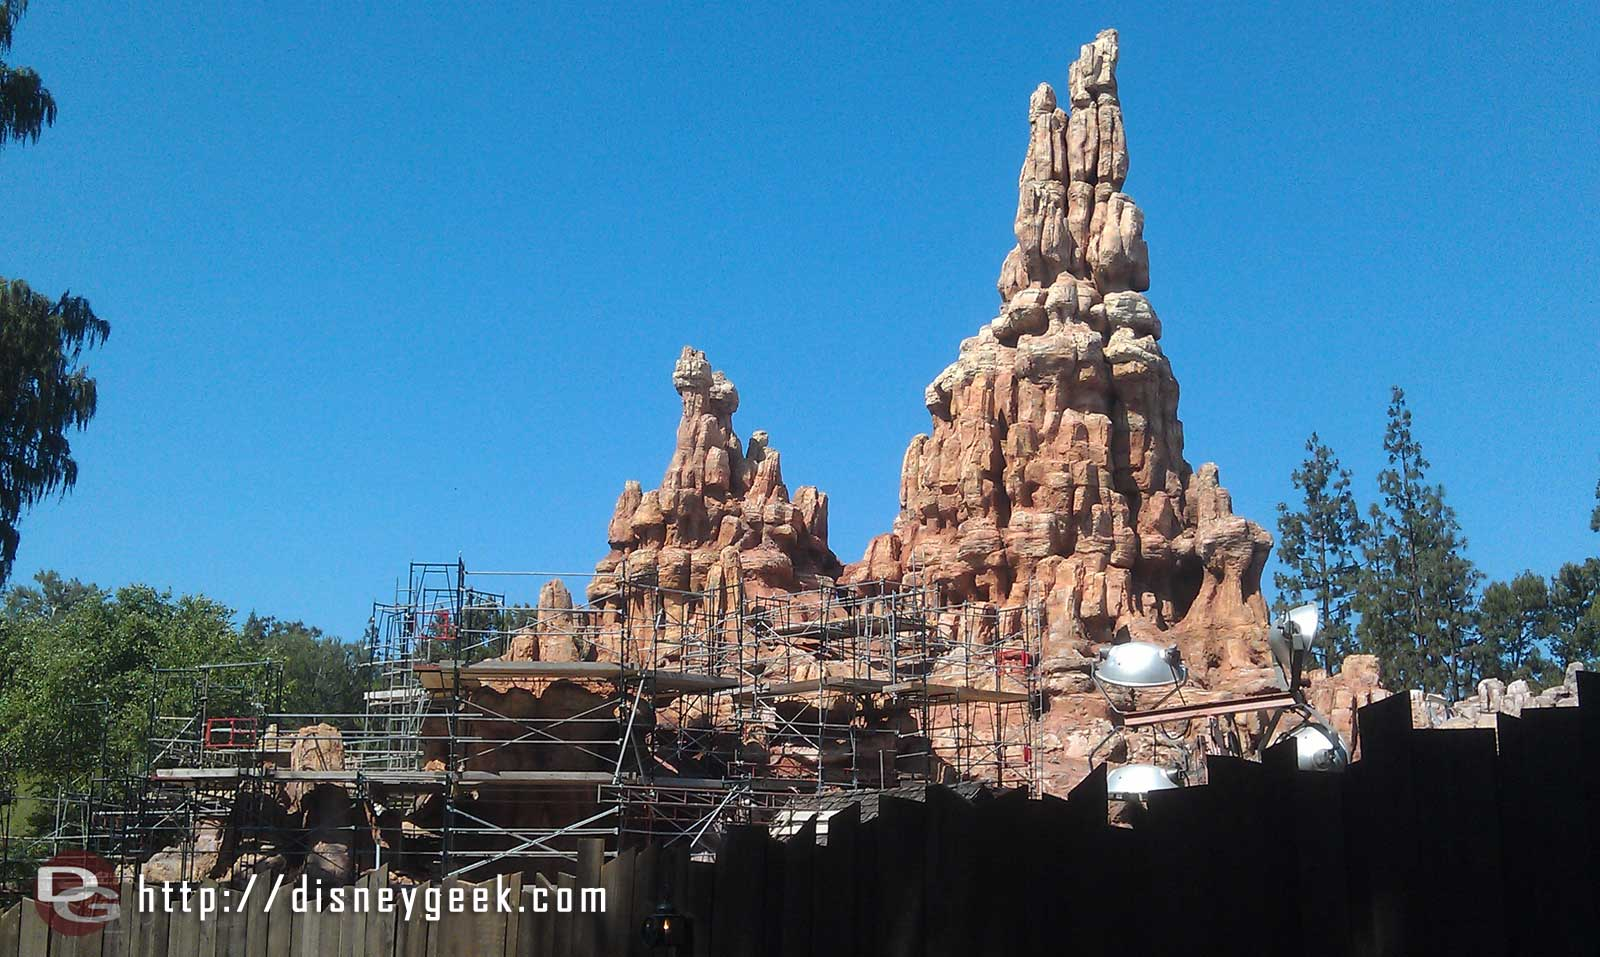 Scaffolding is up on some of Big Thunder as the project moves along.